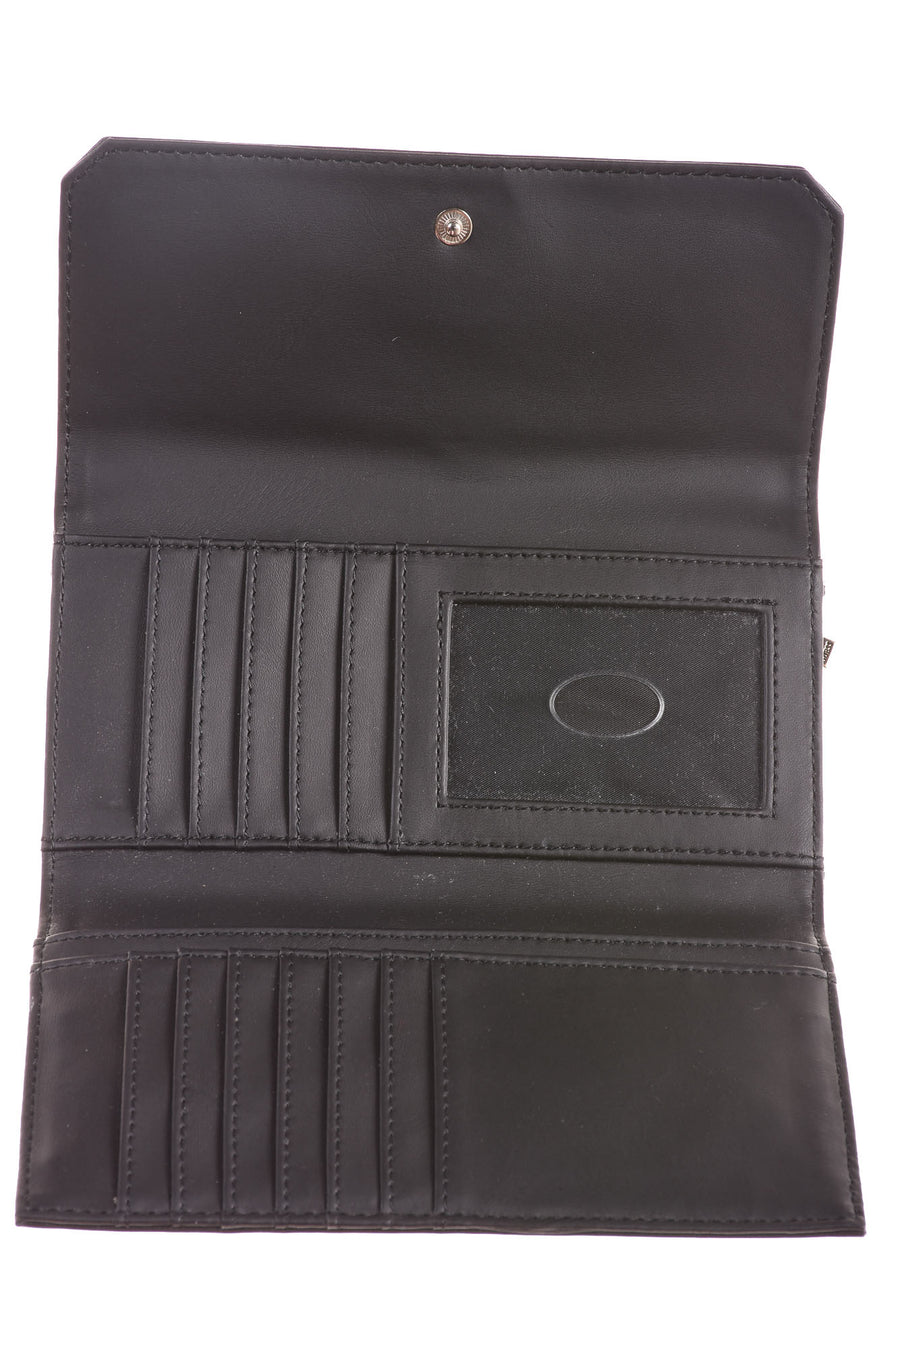 USED Guess Women's Wallet N/A Black